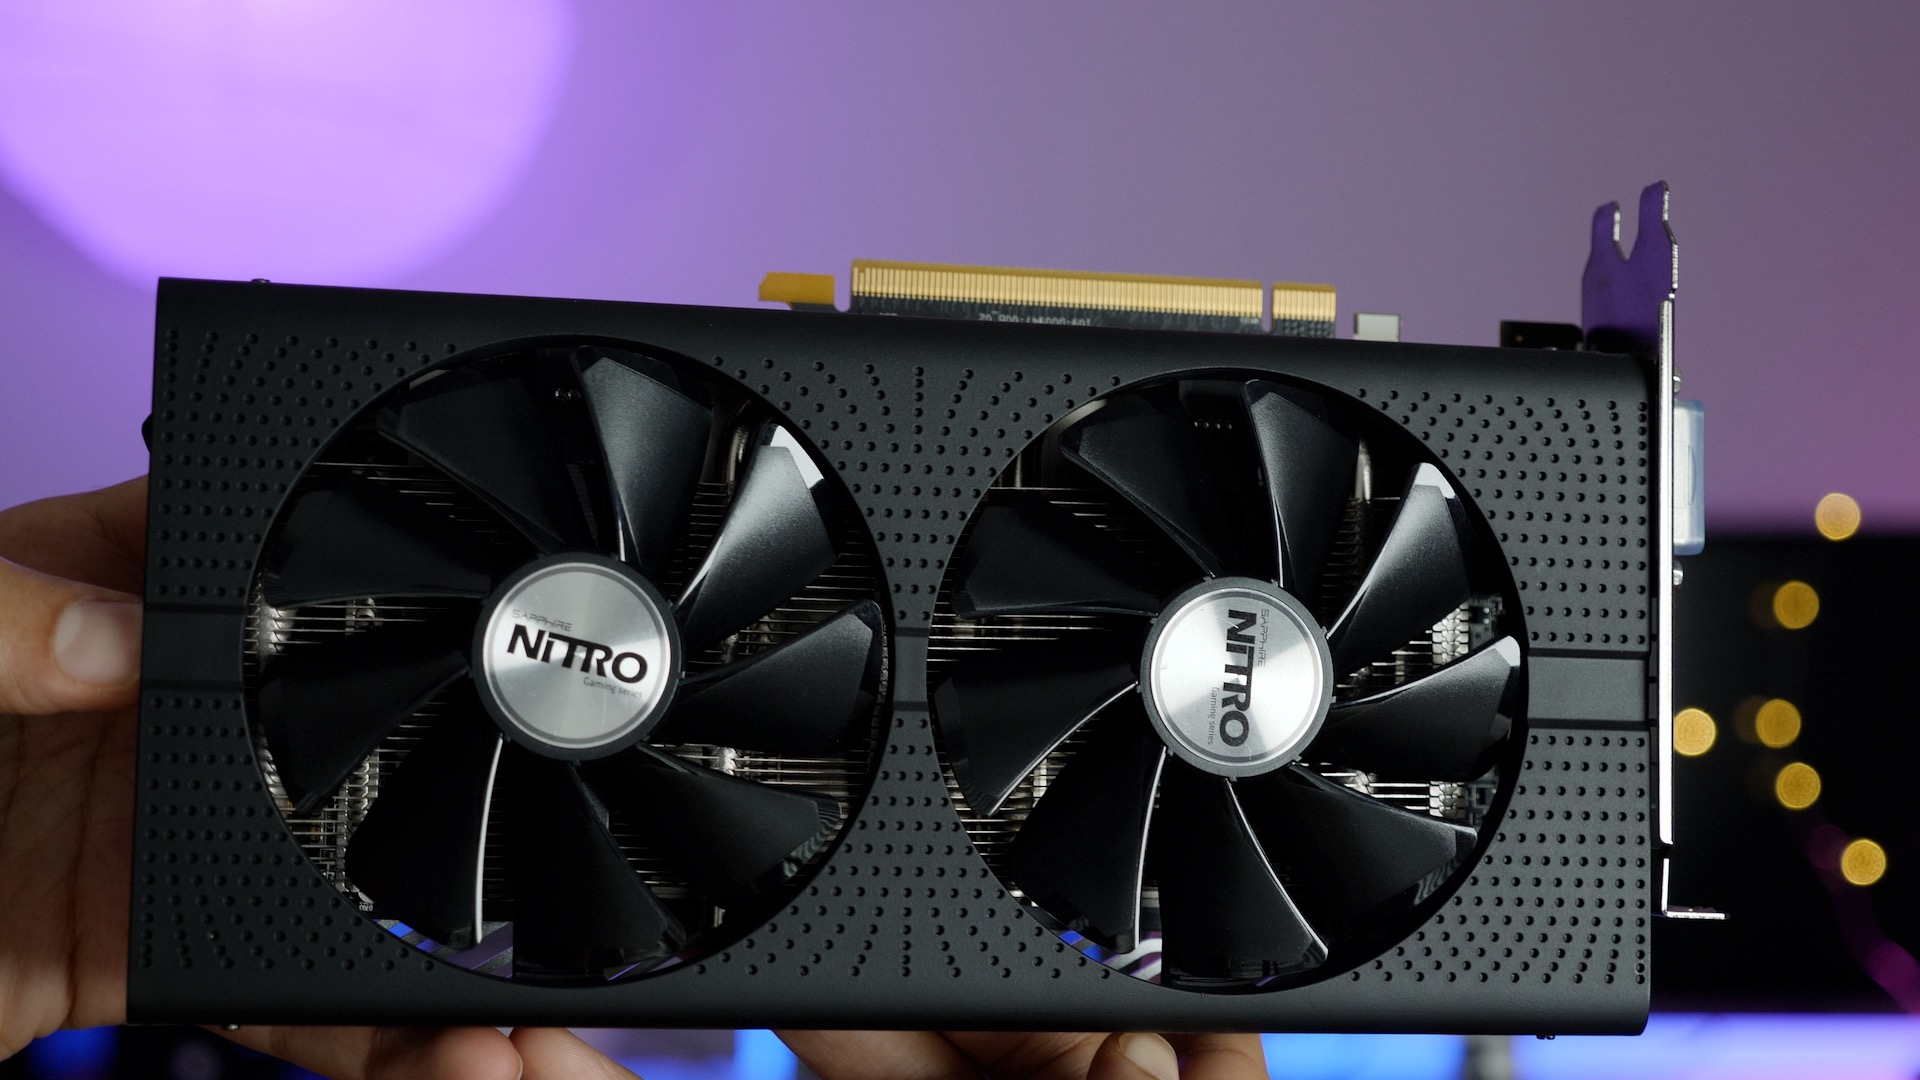 Hackintosh: AMD or Nvidia for Final Cut Pro X? [Video] - 9to5Mac